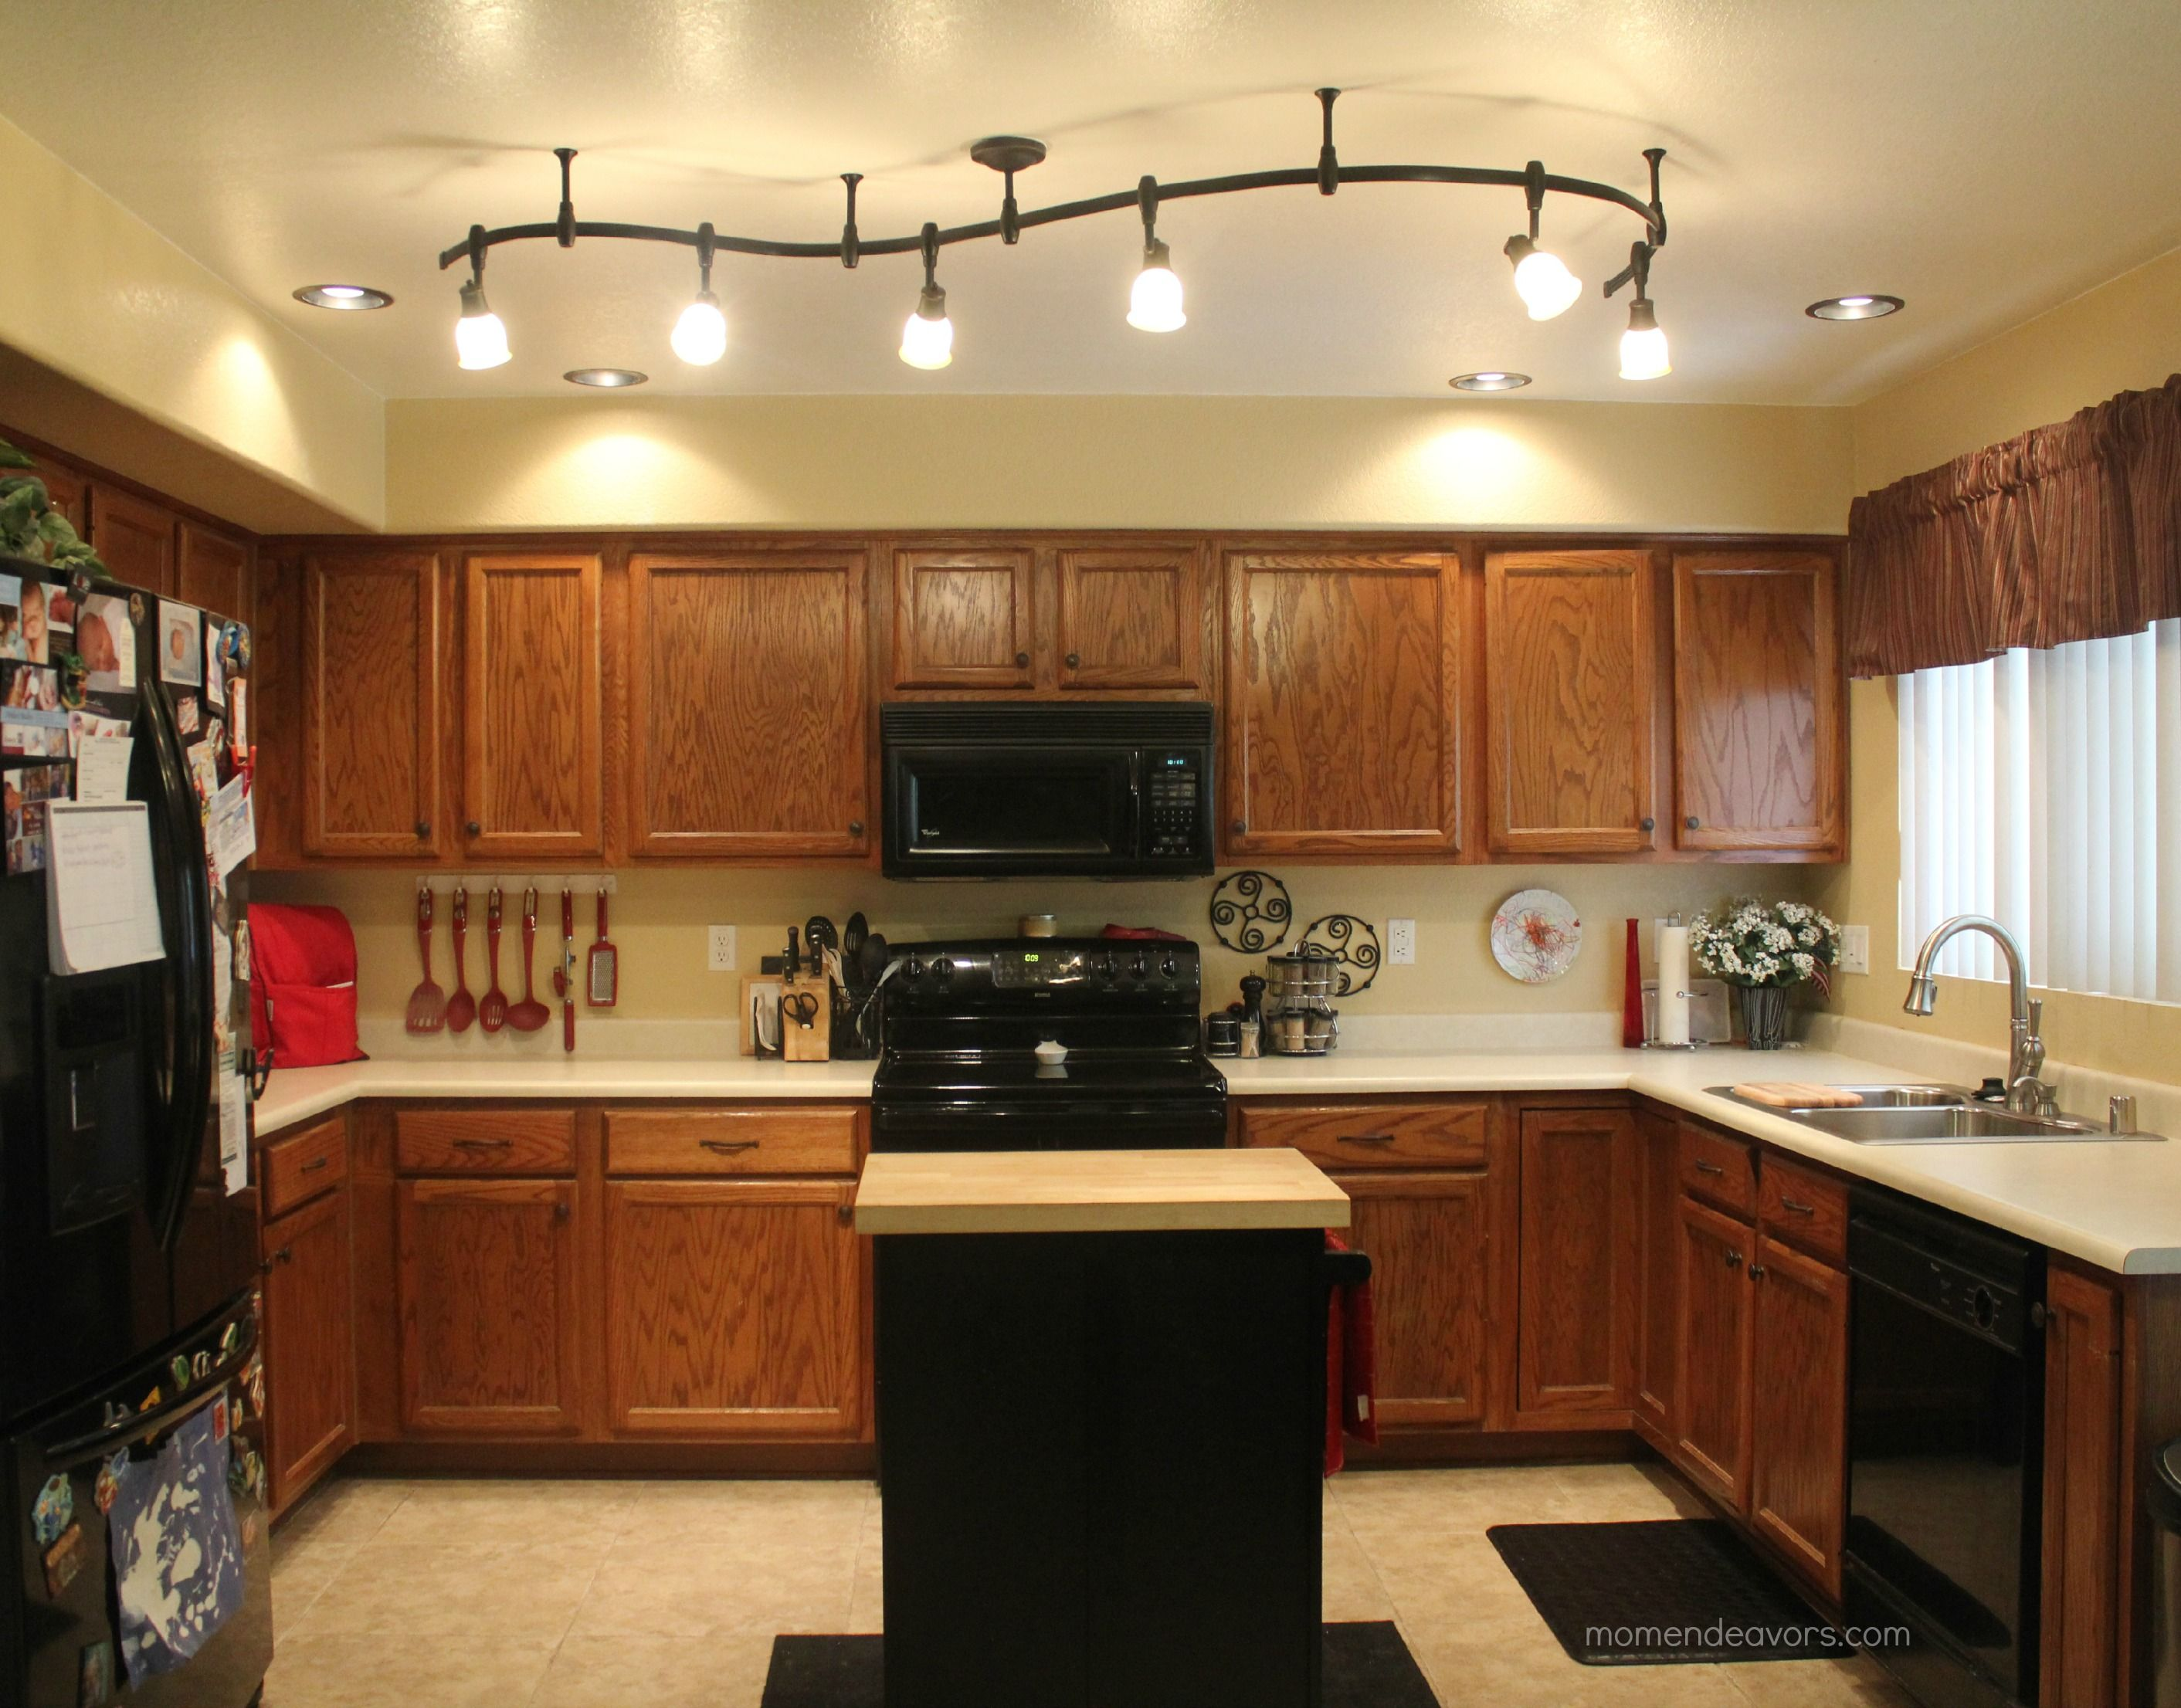 11 Stunning Photos Of Kitchen Track Lighting Diy Kitchen Remodel